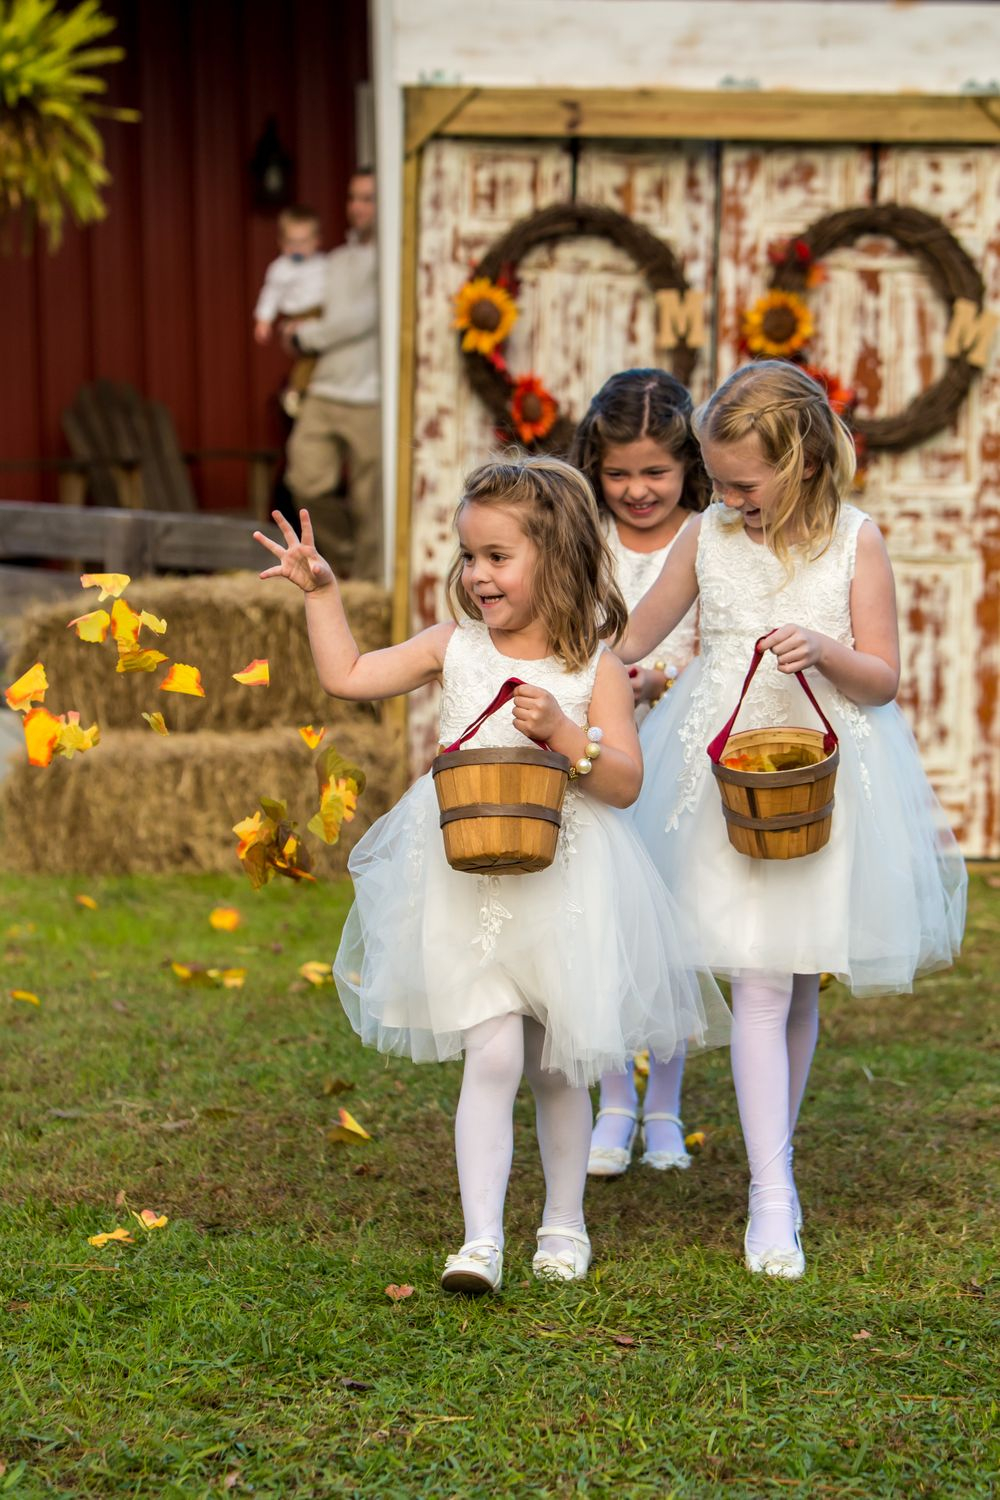 Flower girls drop petals as they walk down the aisle during a wedding at T&S Farm in Leesville, SC